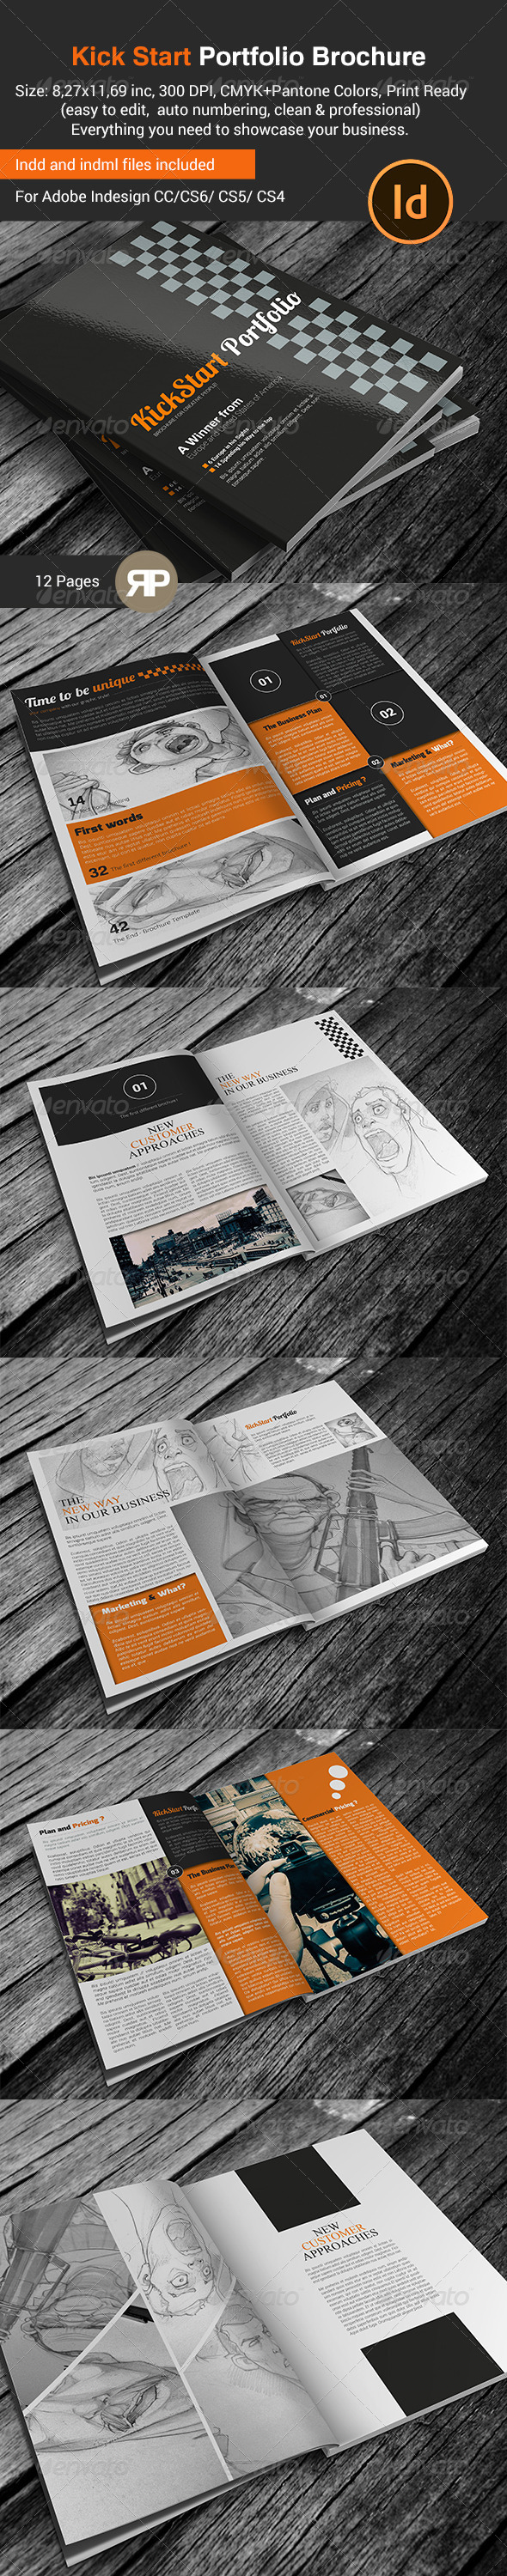 GraphicRiver New Way Portfolio Brochure Portrait Version 7819456